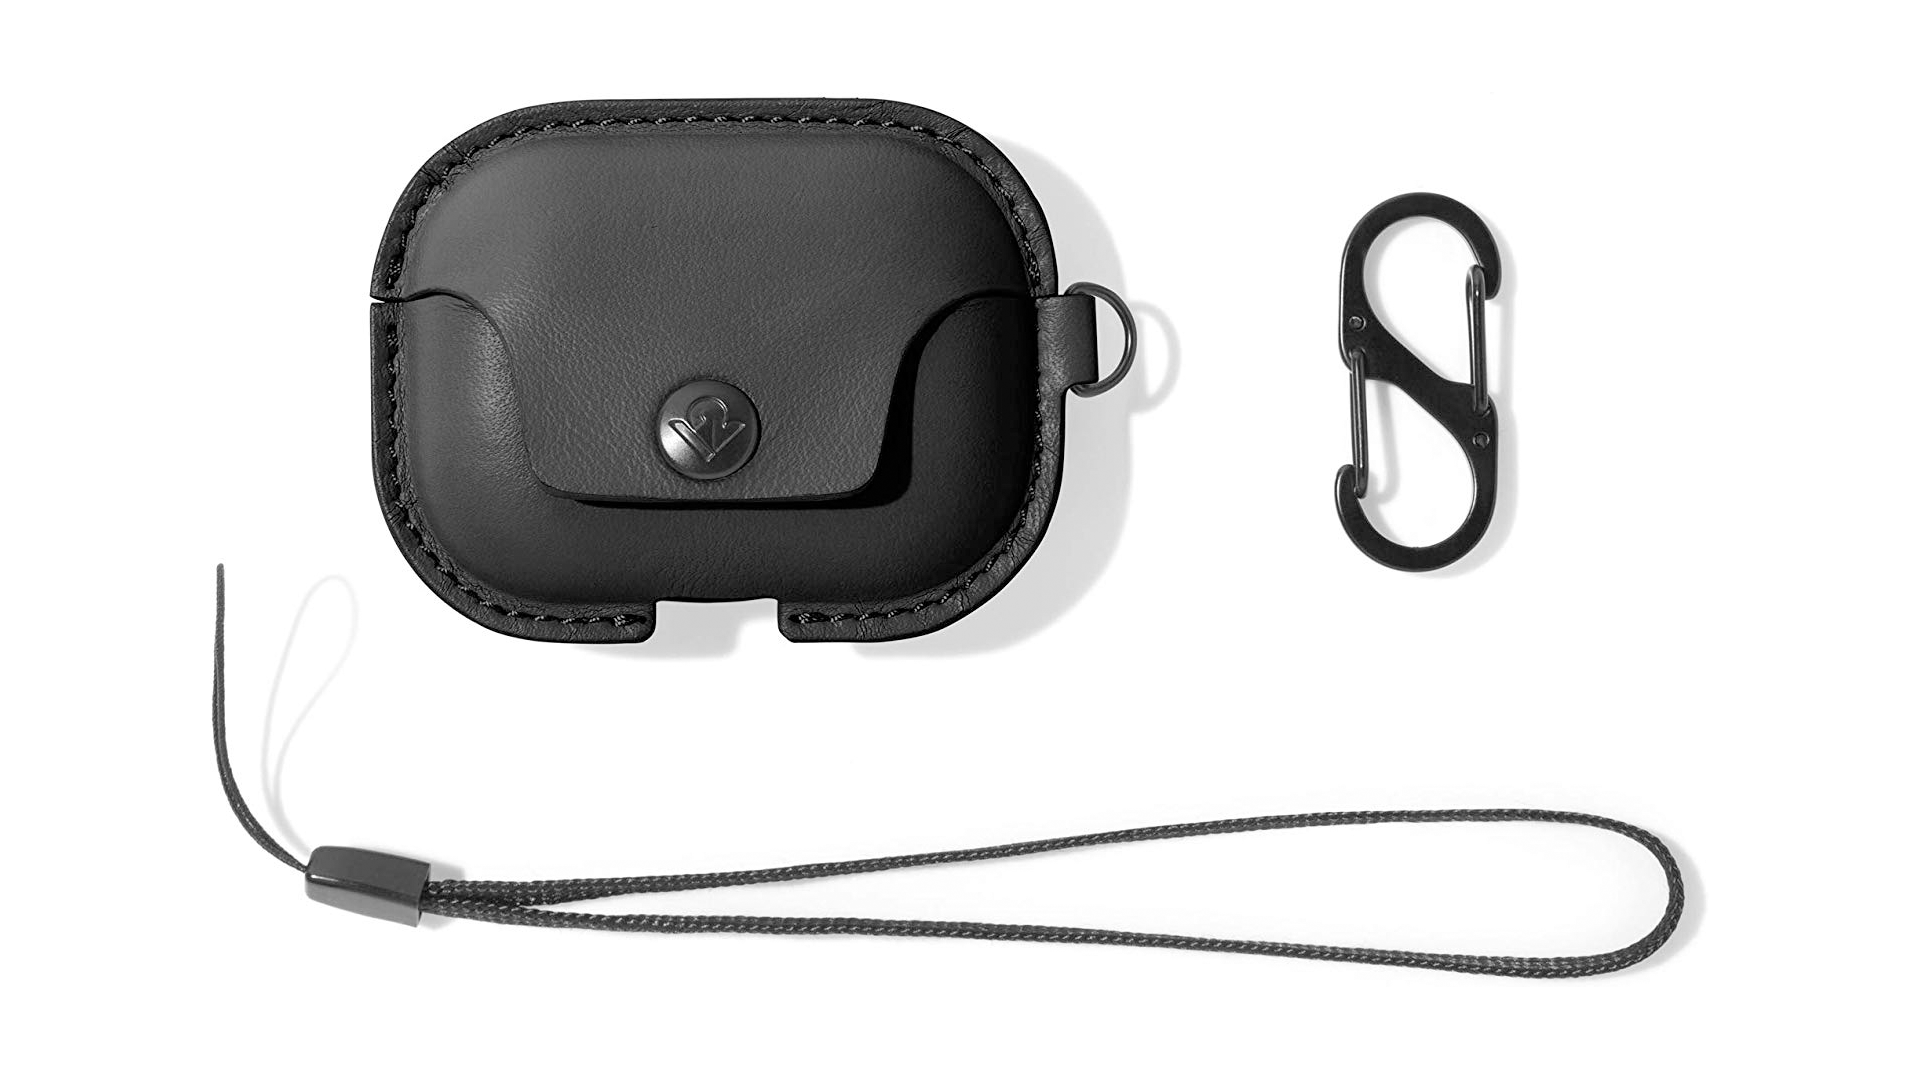 The Twelve South AirSnap Pro case